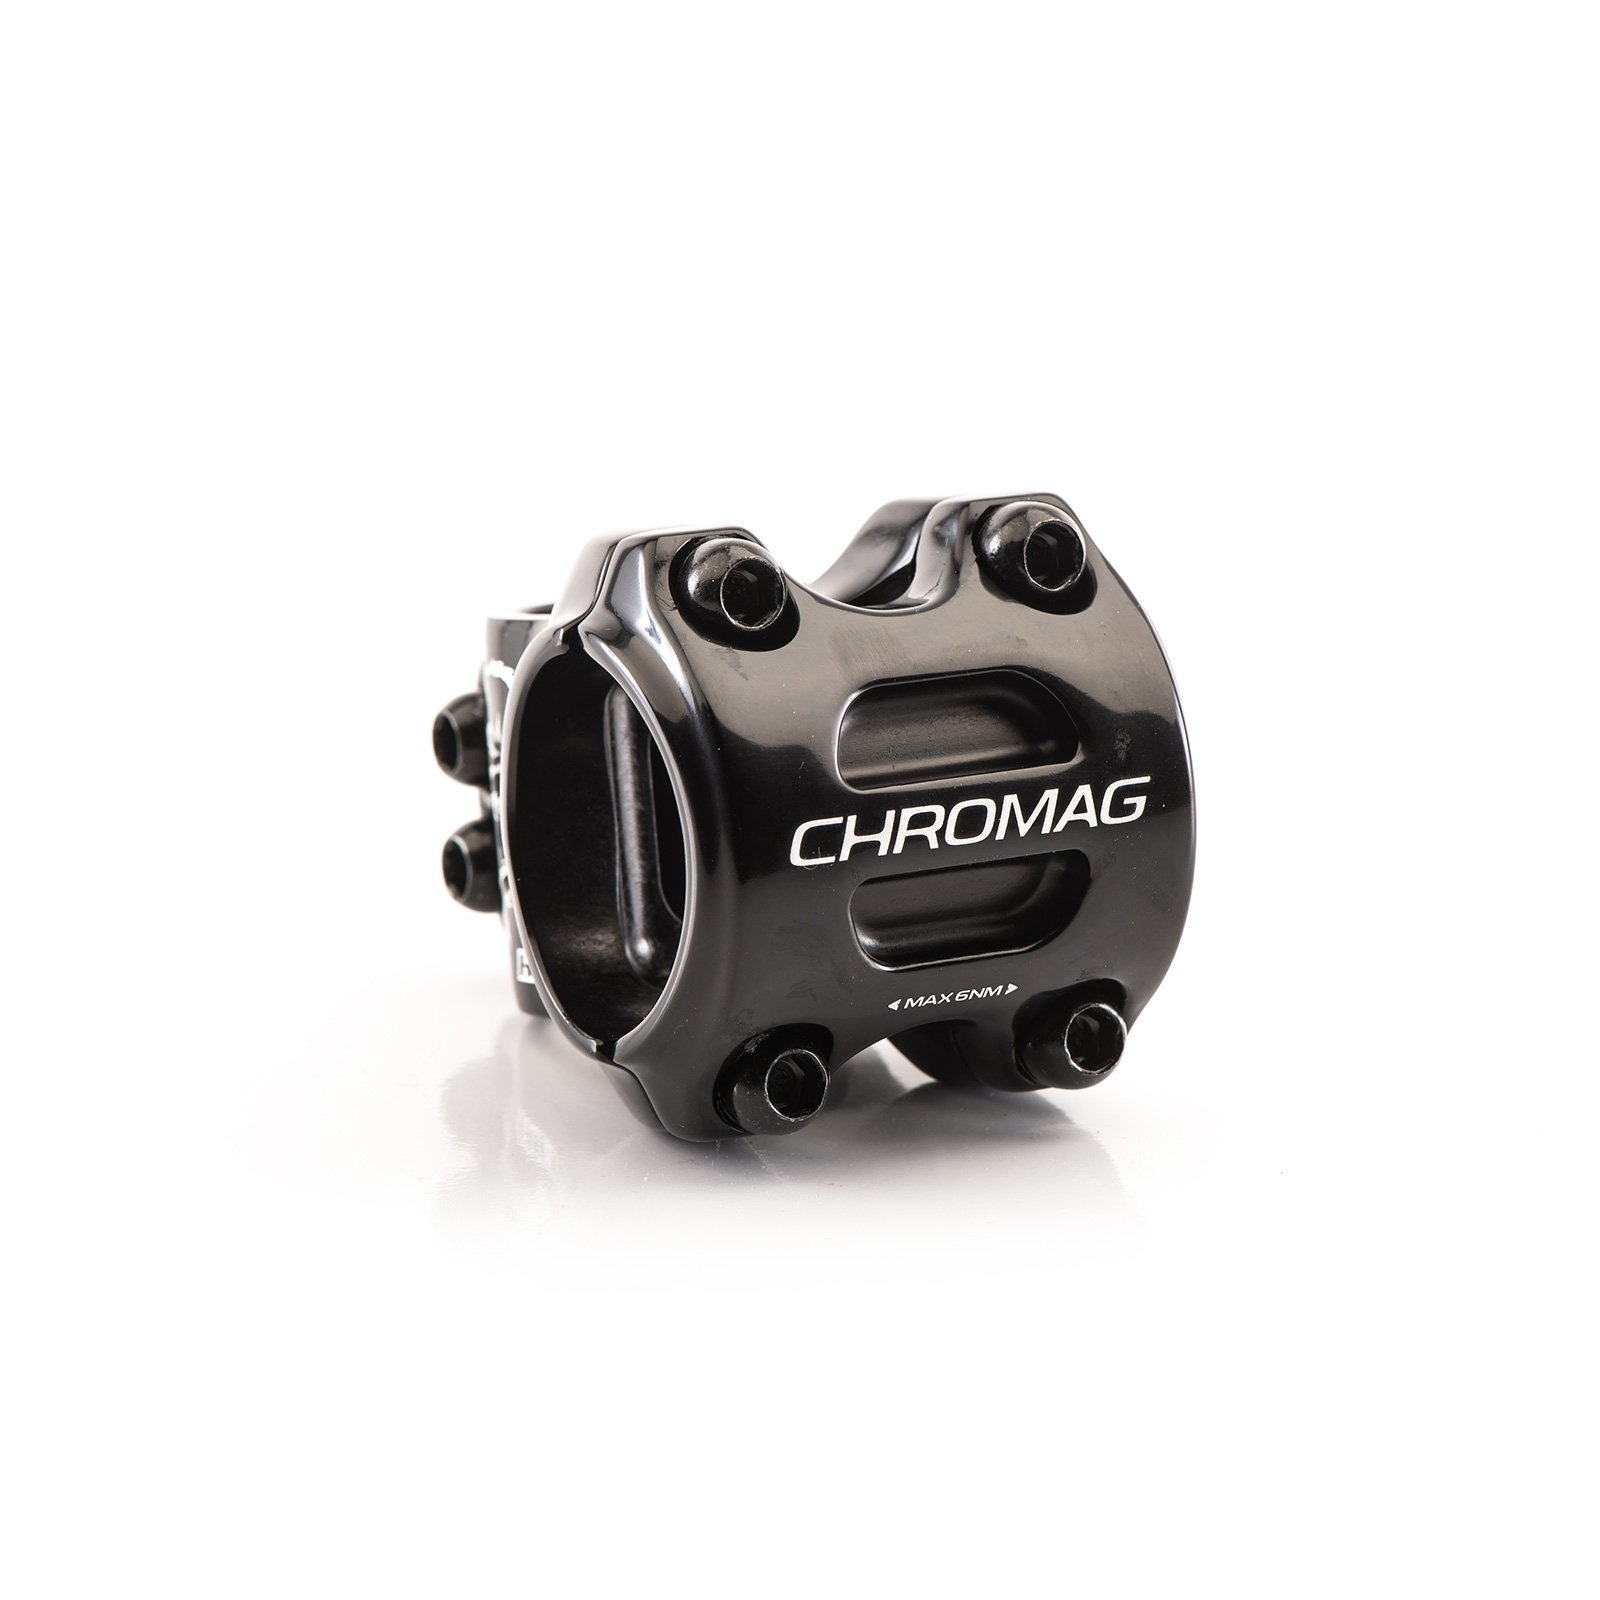 Chromag HIFI Stem 35mm Length / 35 Diameter-1